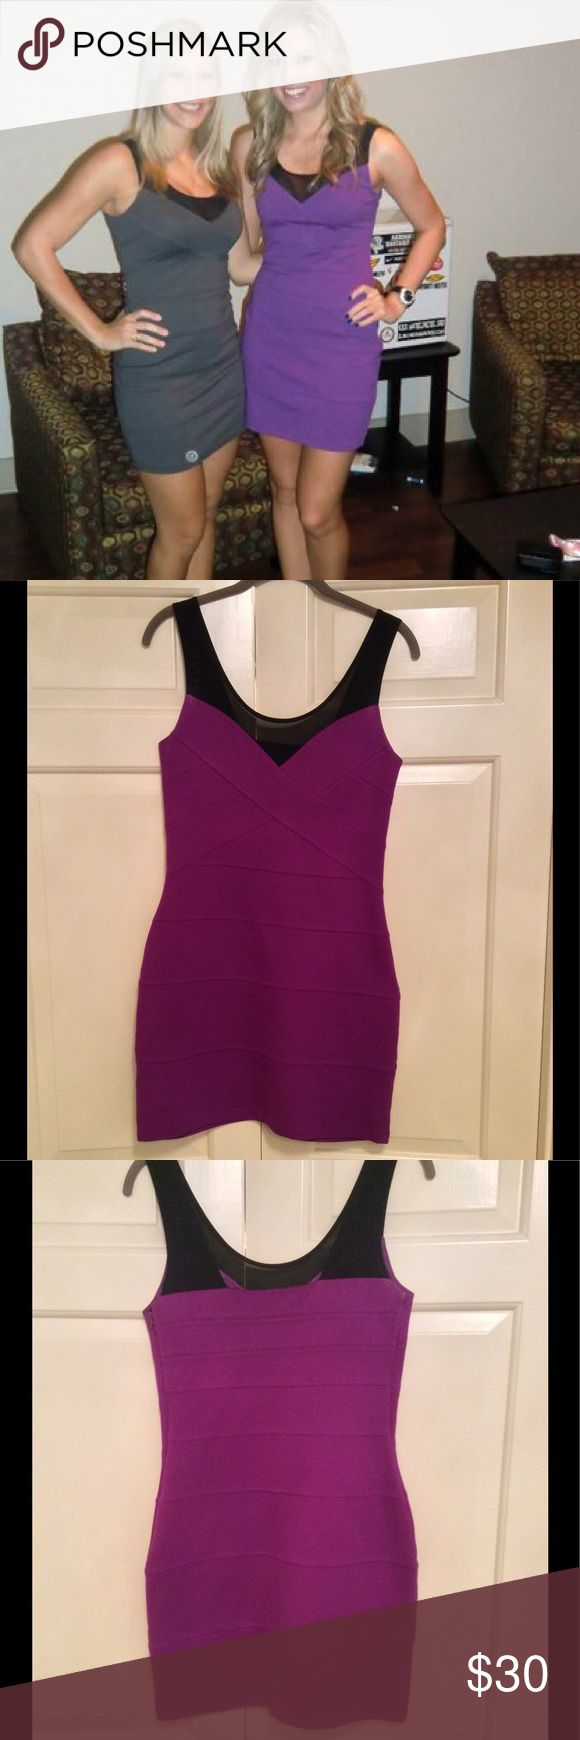 🇺🇸4th SALE🇺🇸 EXPRESS Purple Bandage Dress Sexy lil bandage dress from Express! Only worn twice & in excellent condition! The perfect outfit for a night out Express Dresses Mini